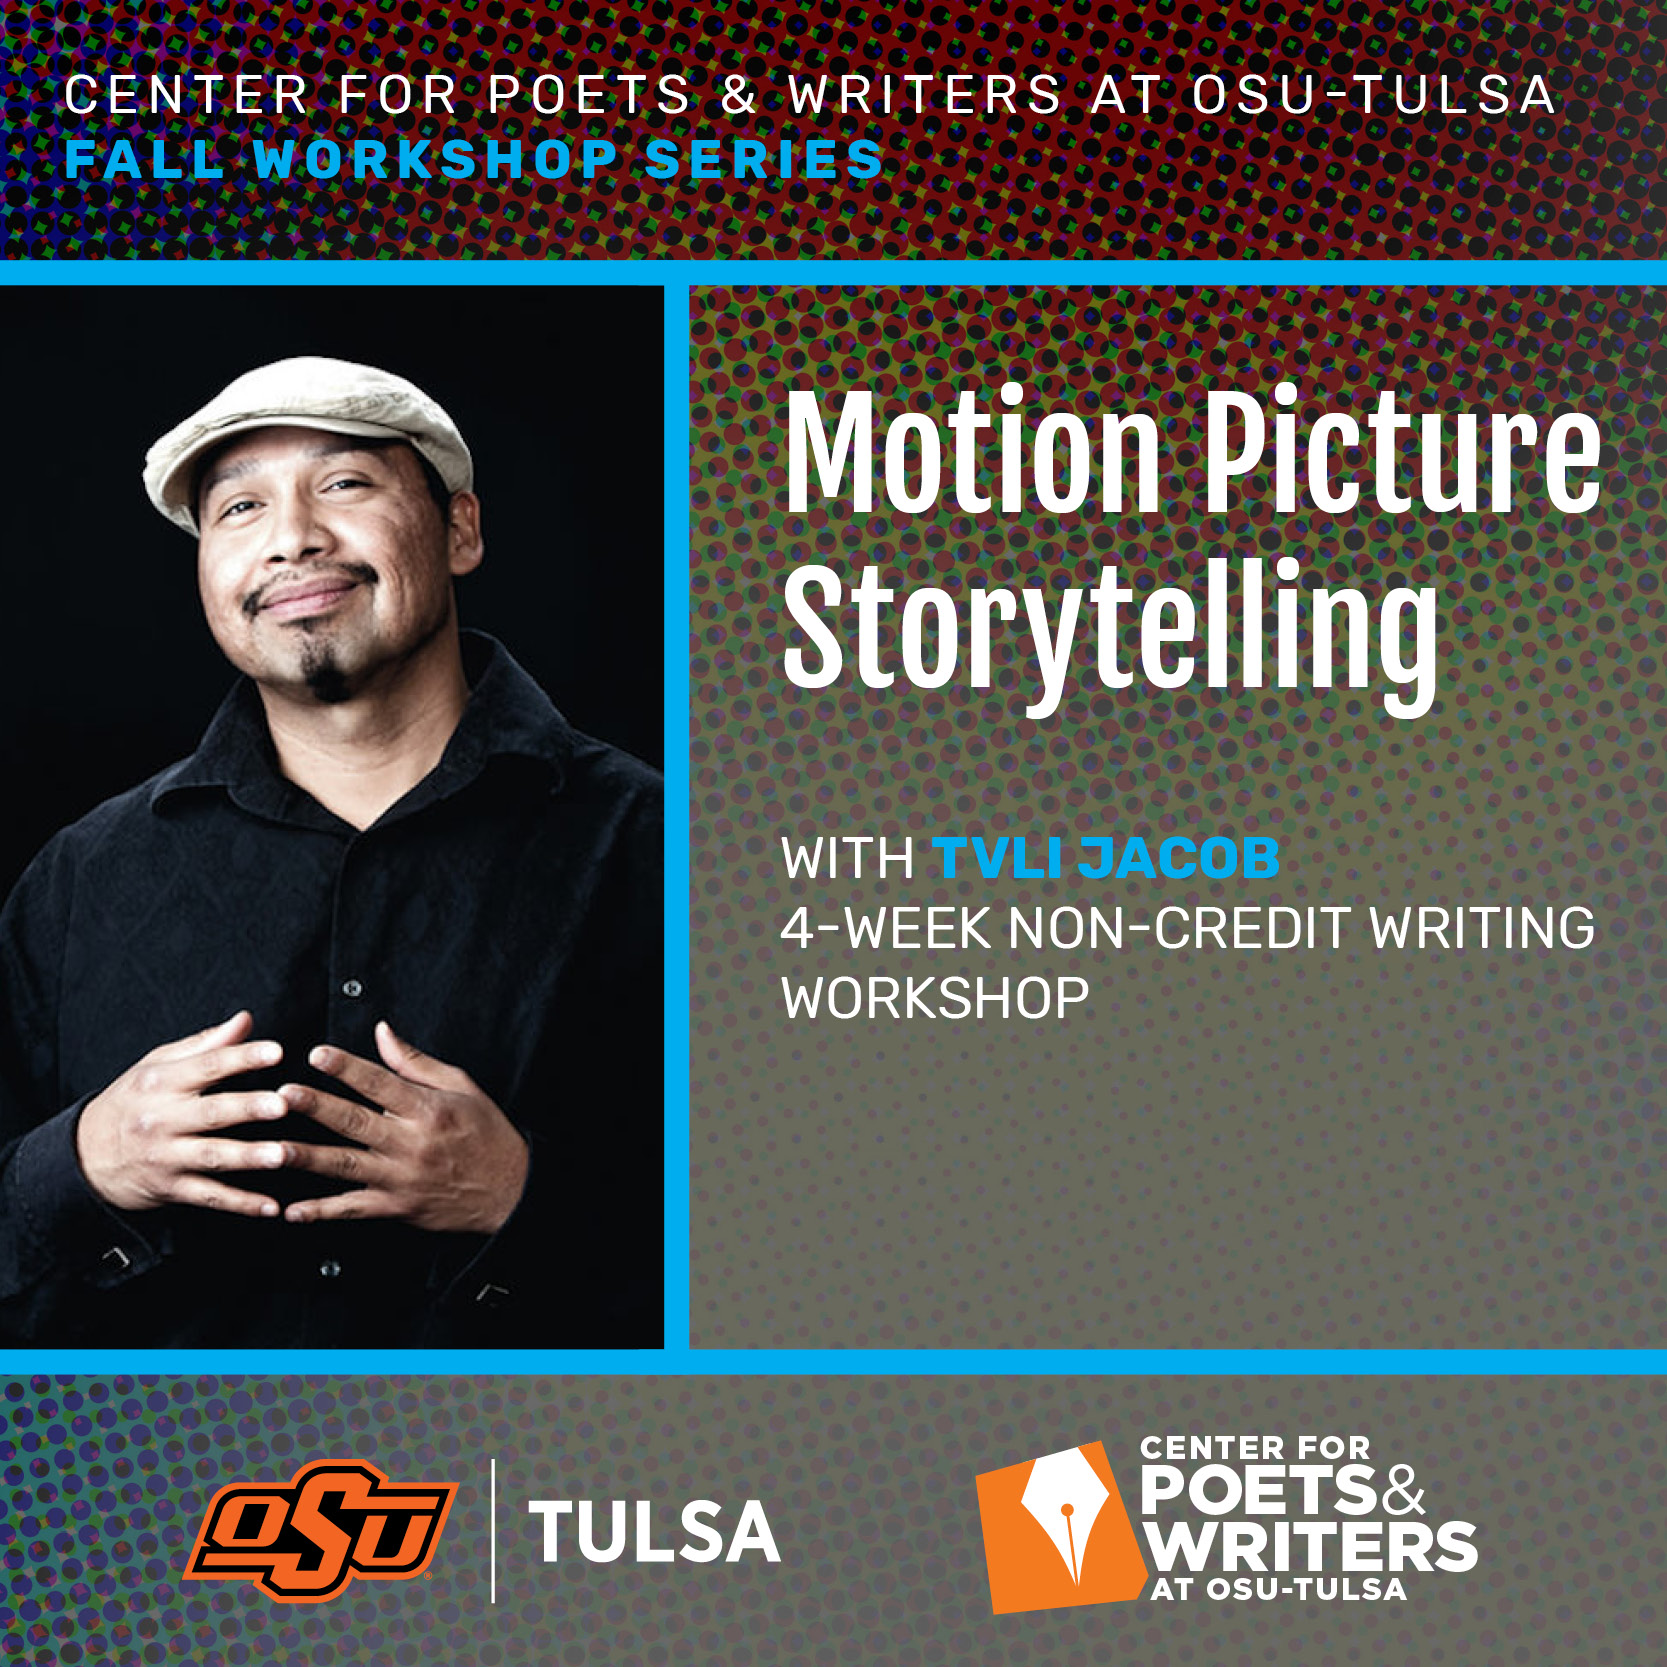 Motion Picture Storytelling